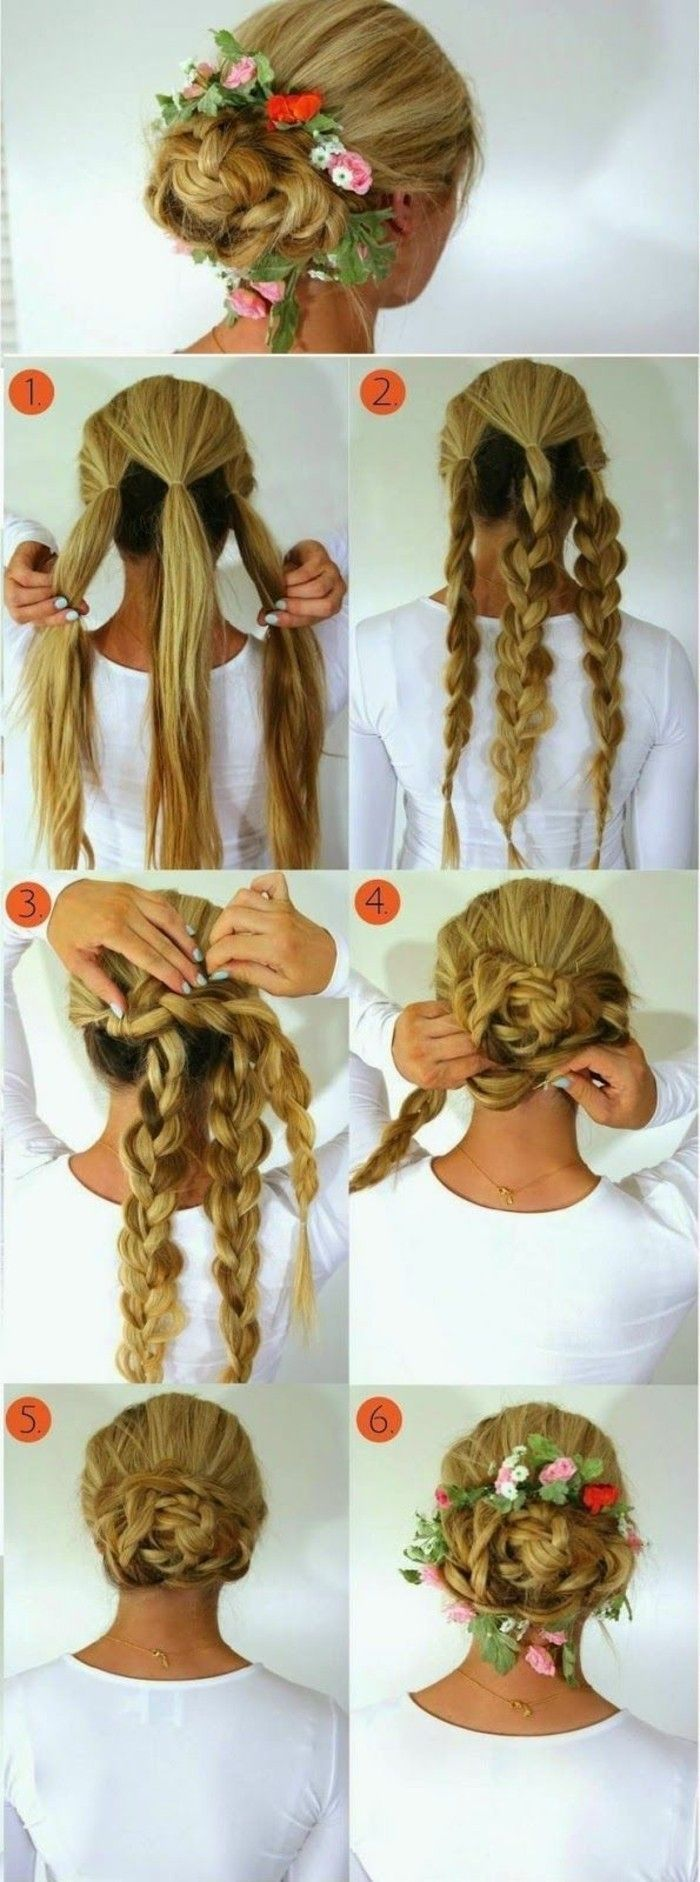 69 Oktoberfest hairstyles and instructions – for an unforgettable Oktoberfest experience